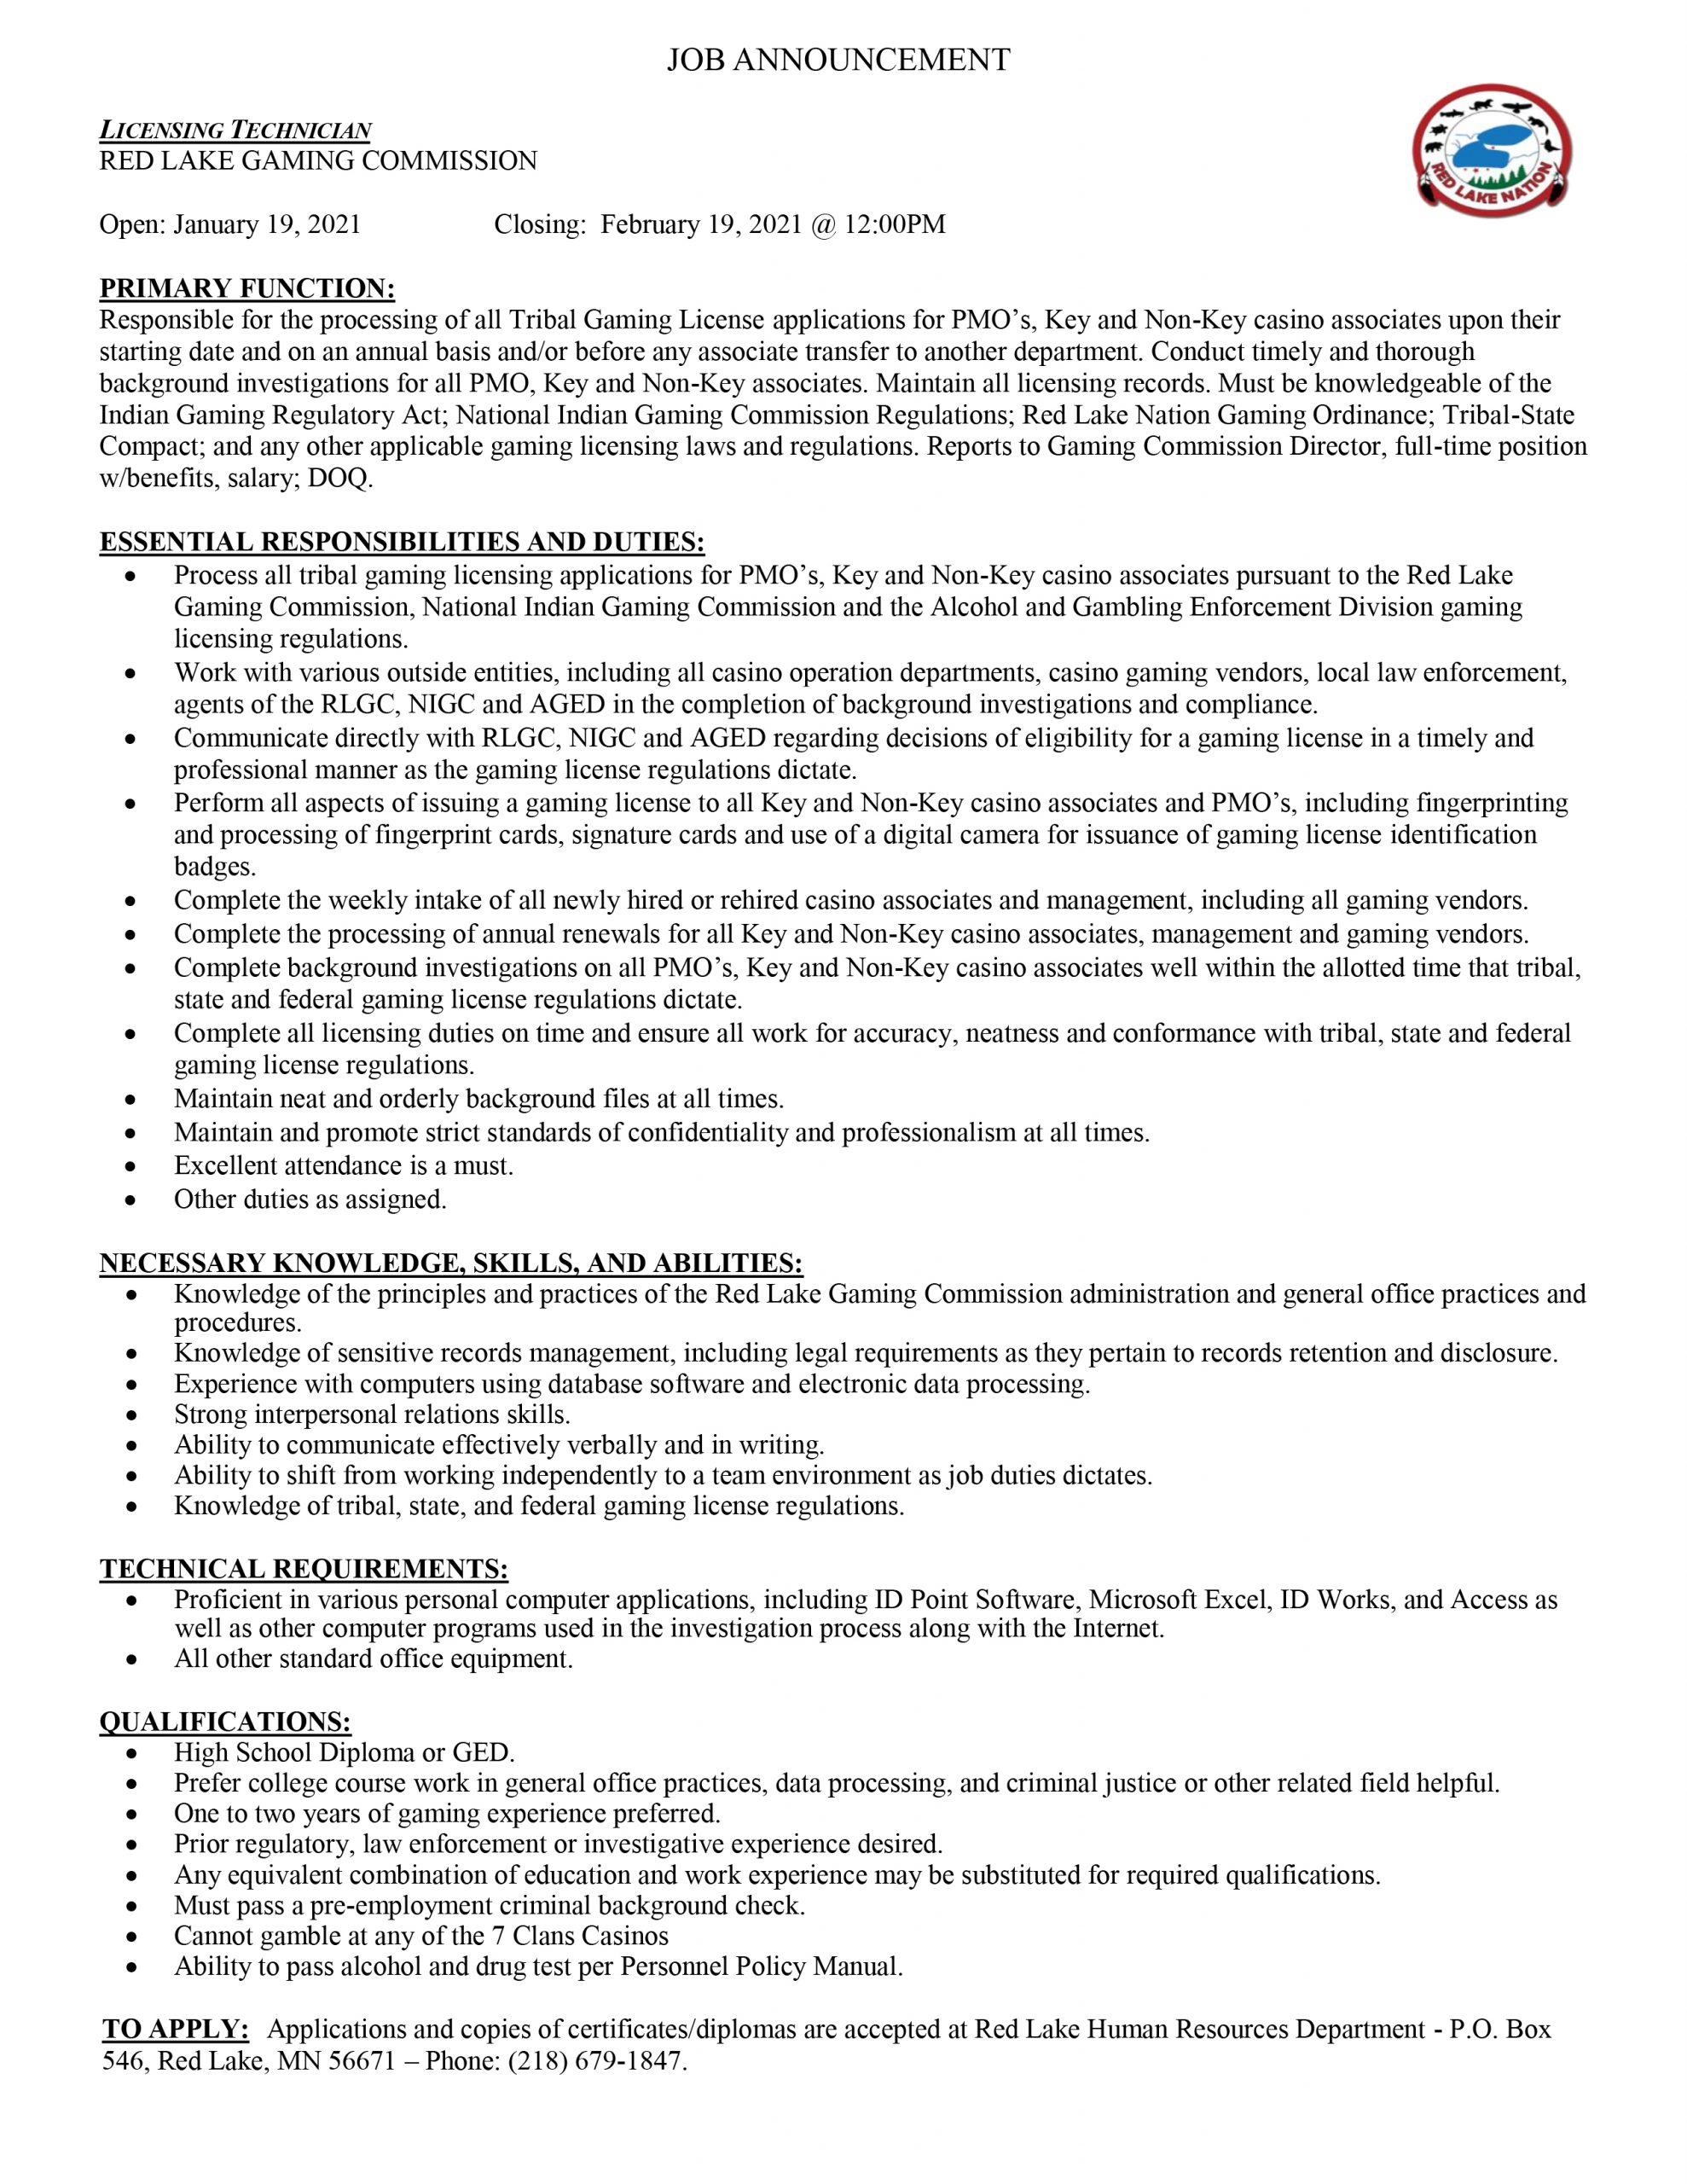 Licensing-Technician-Gaming-Commission-JA